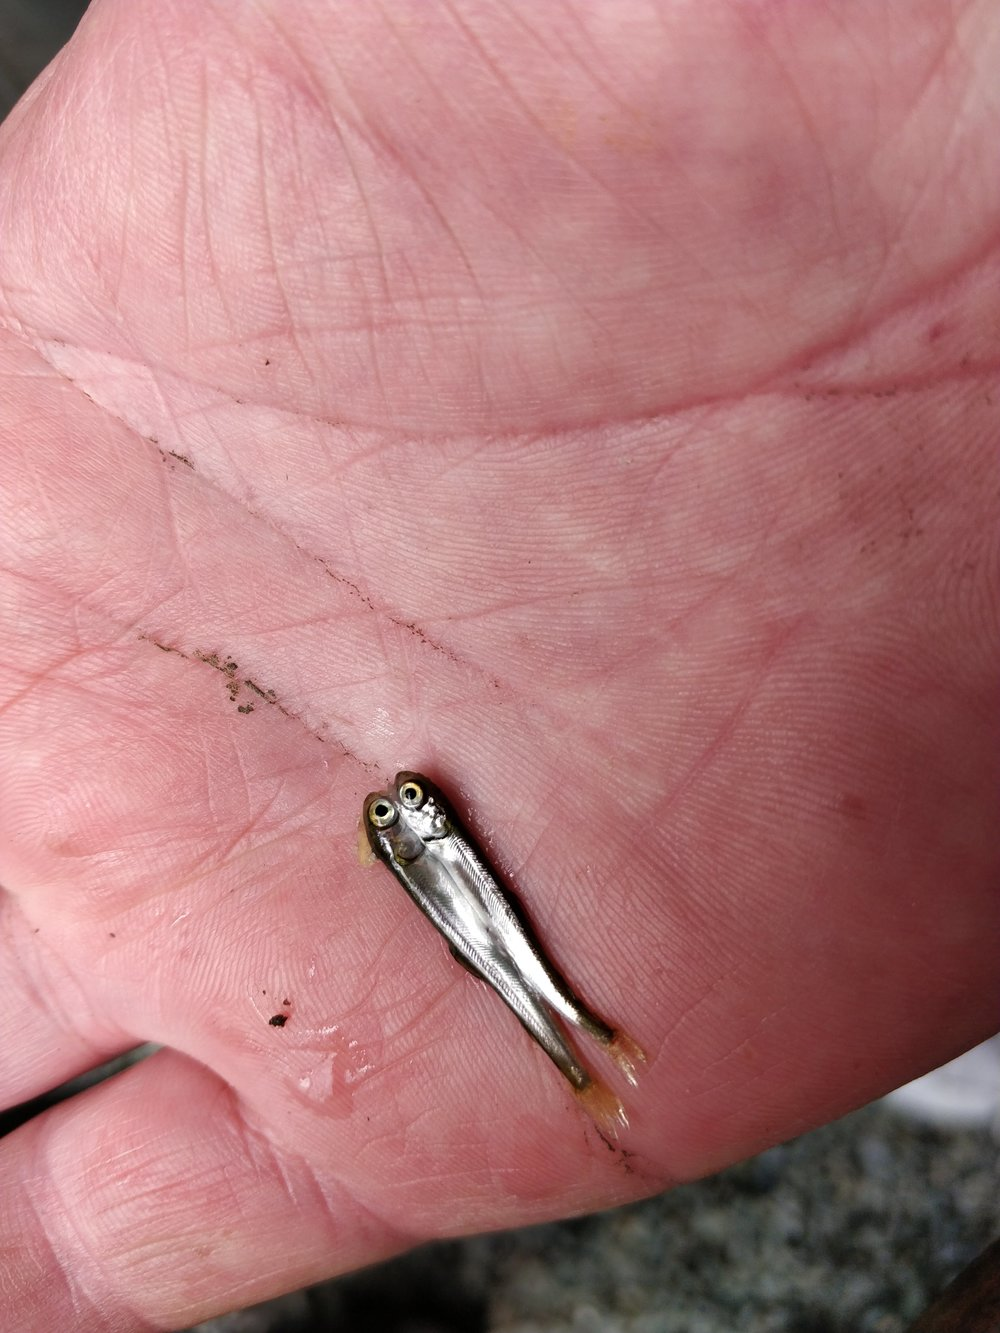 Unusual - March, 2018Member Mitch found a 2 headed Coho fry.